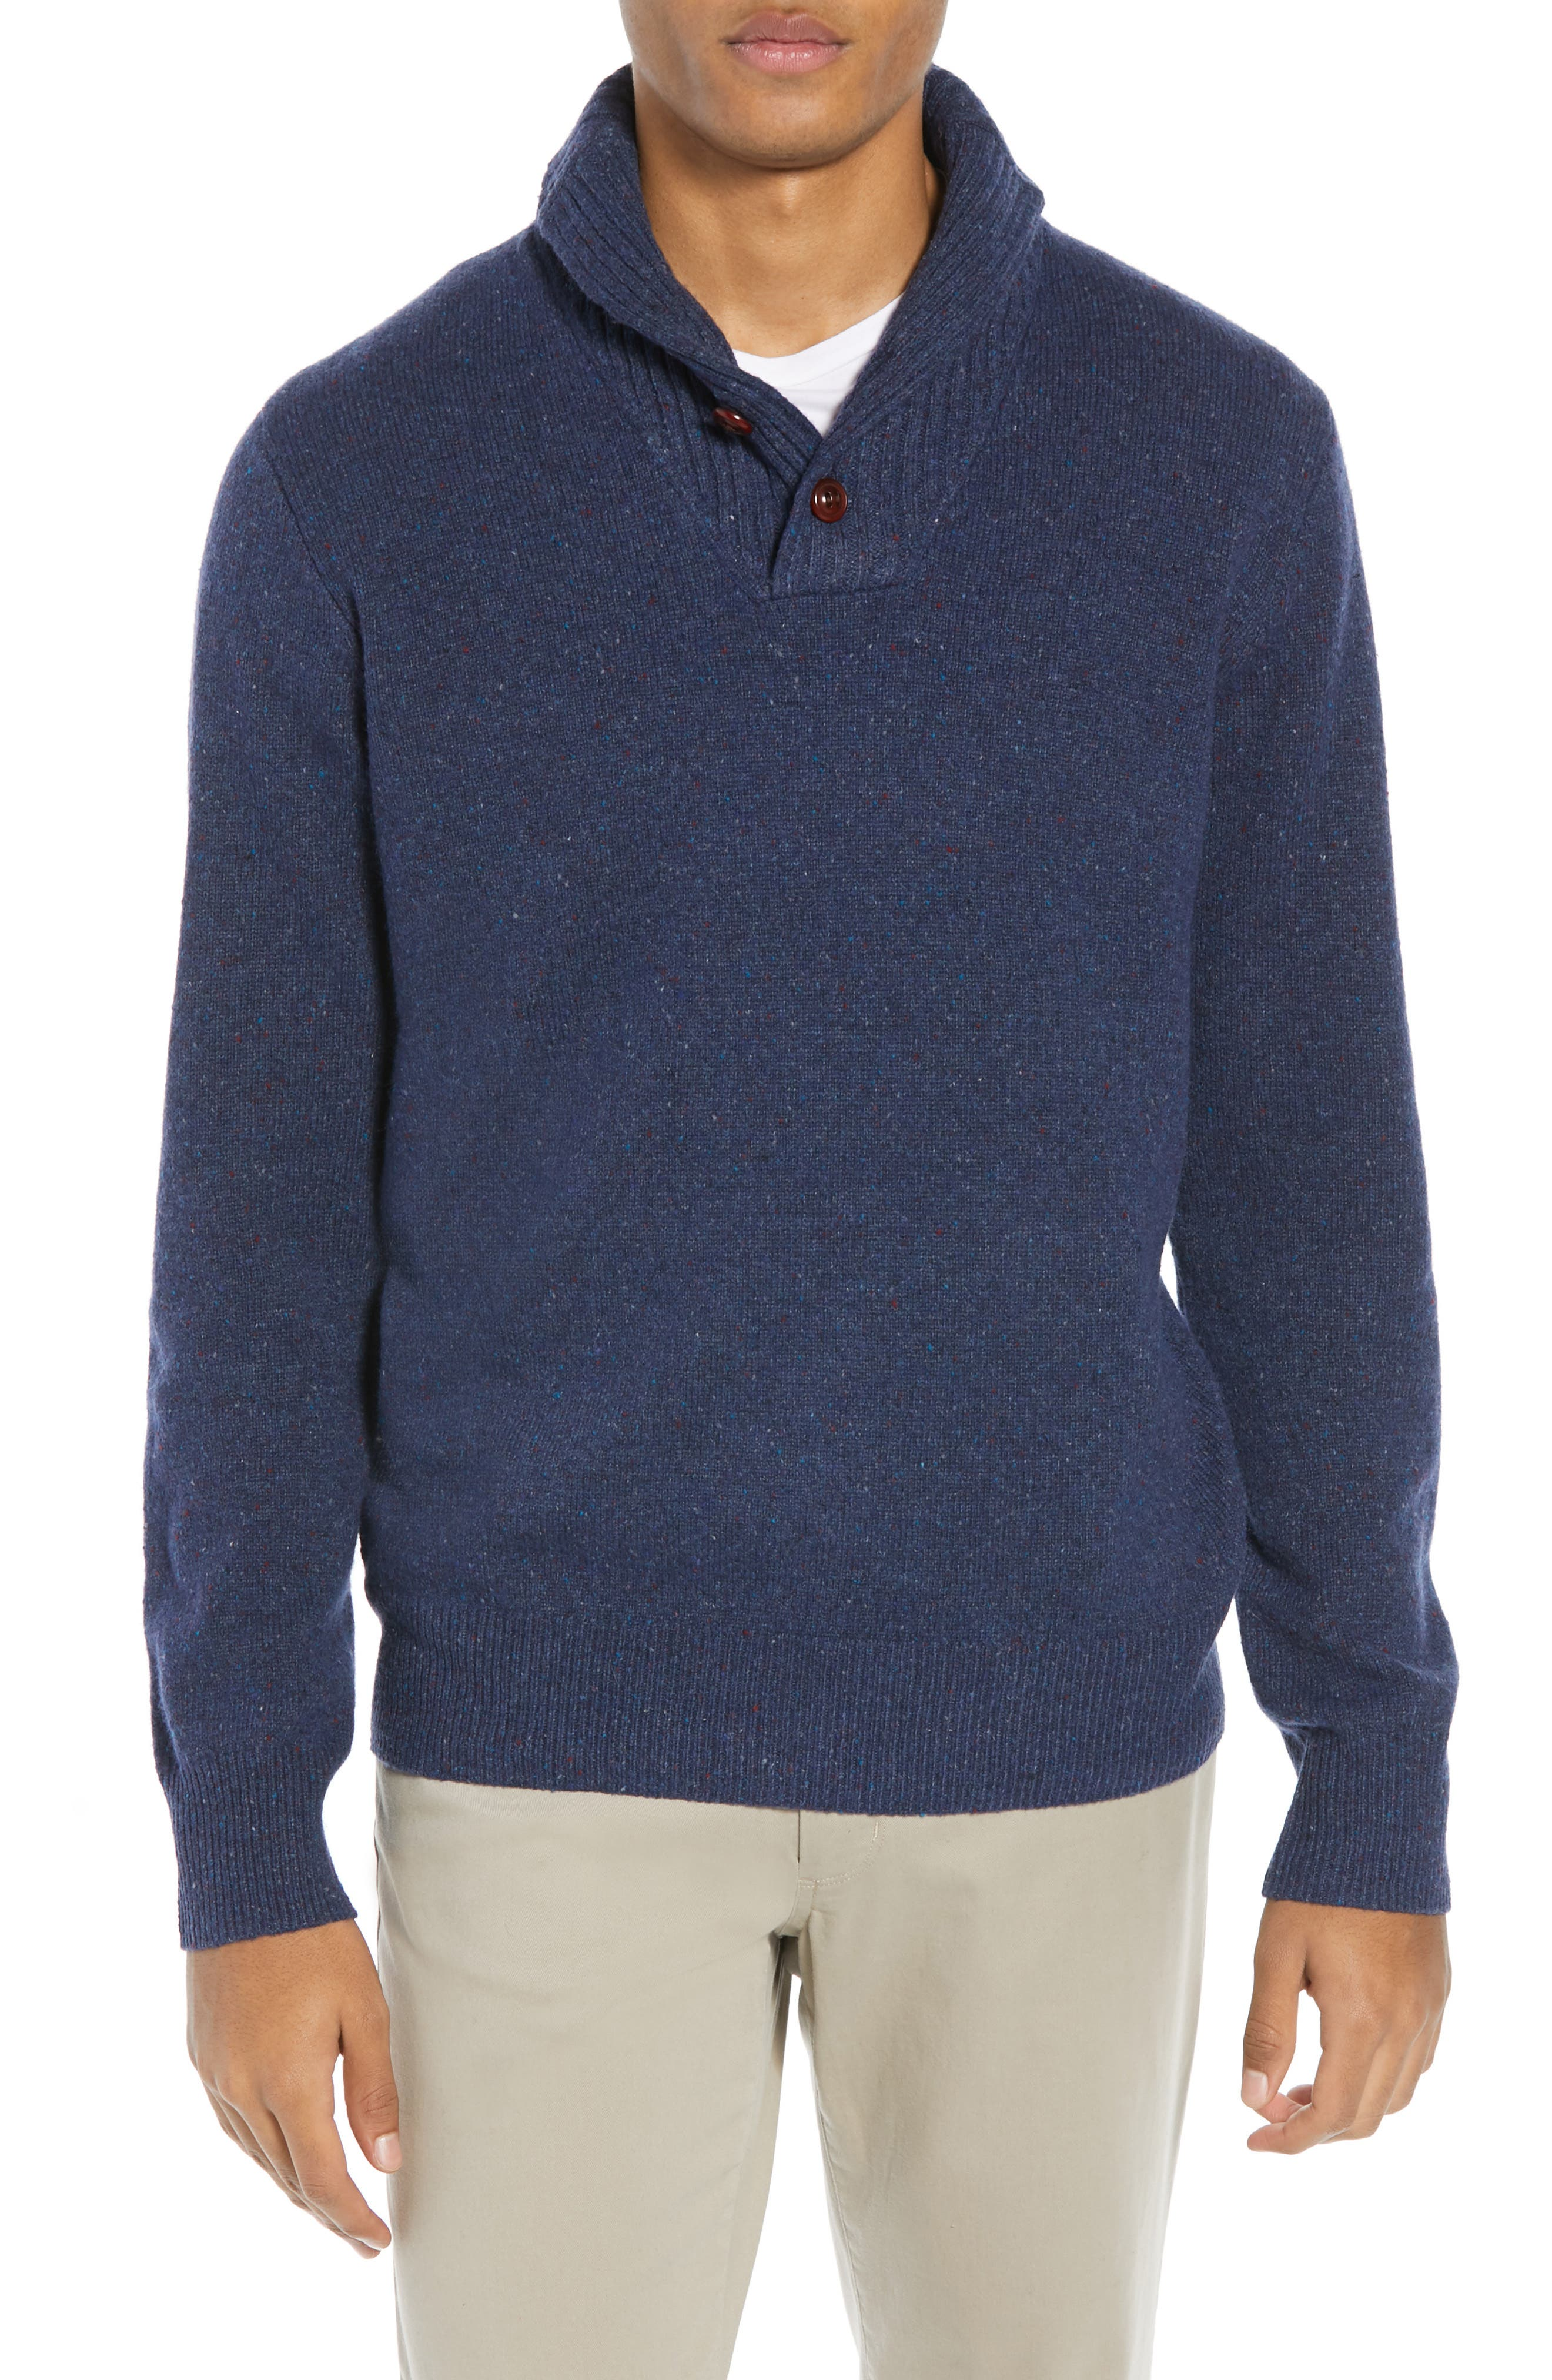 Rugged Merino Wool Blend Shawl Collar Pullover Sweater,                         Main,                         color, NAVY DONEGAL